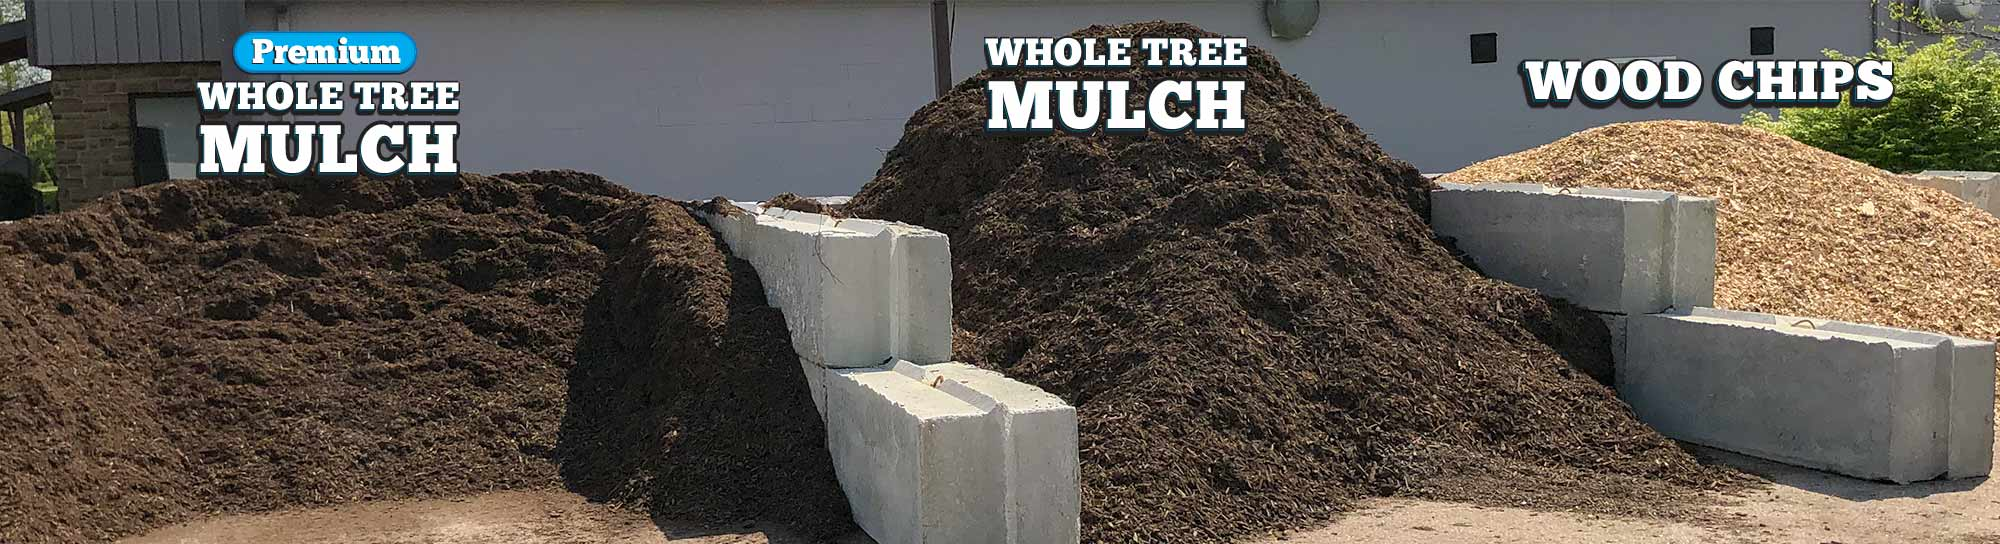 organic mulch in bins with labels